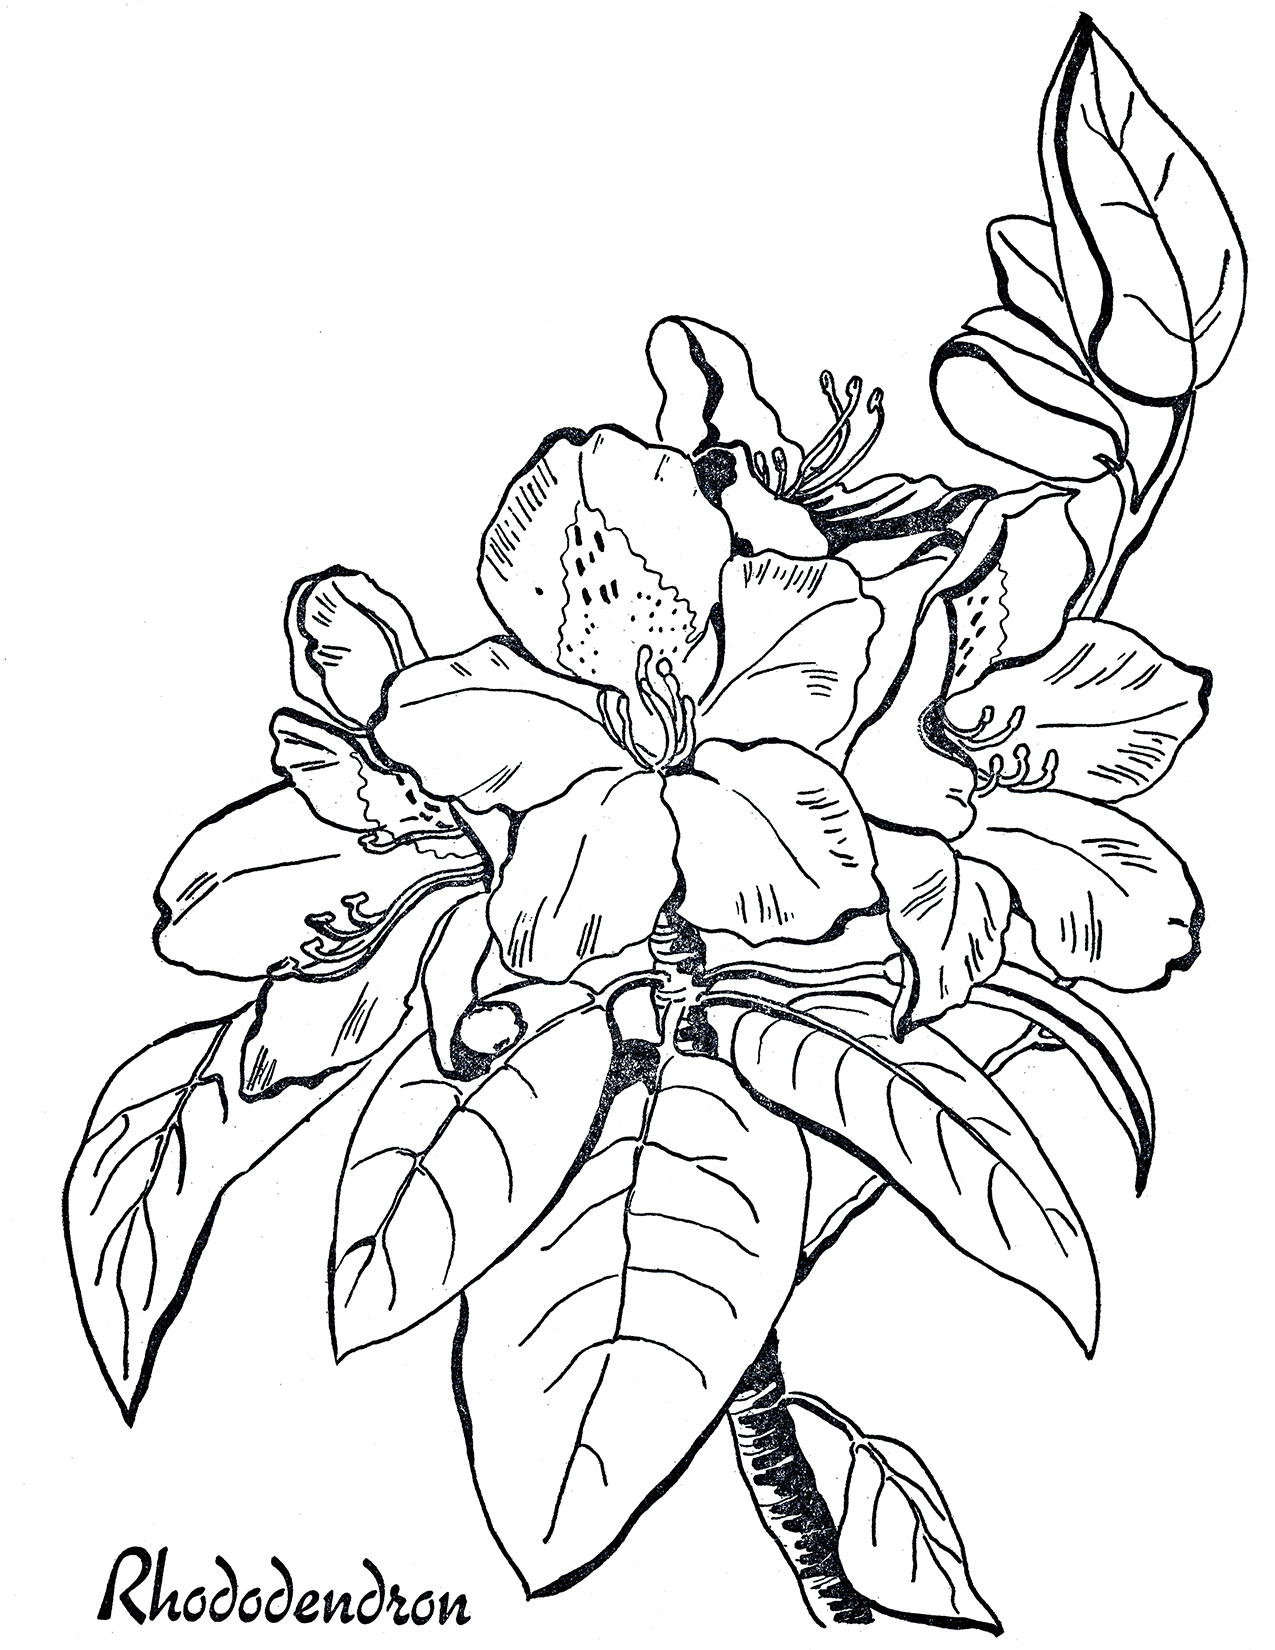 rhododendron line art coloring page the graphics fairy